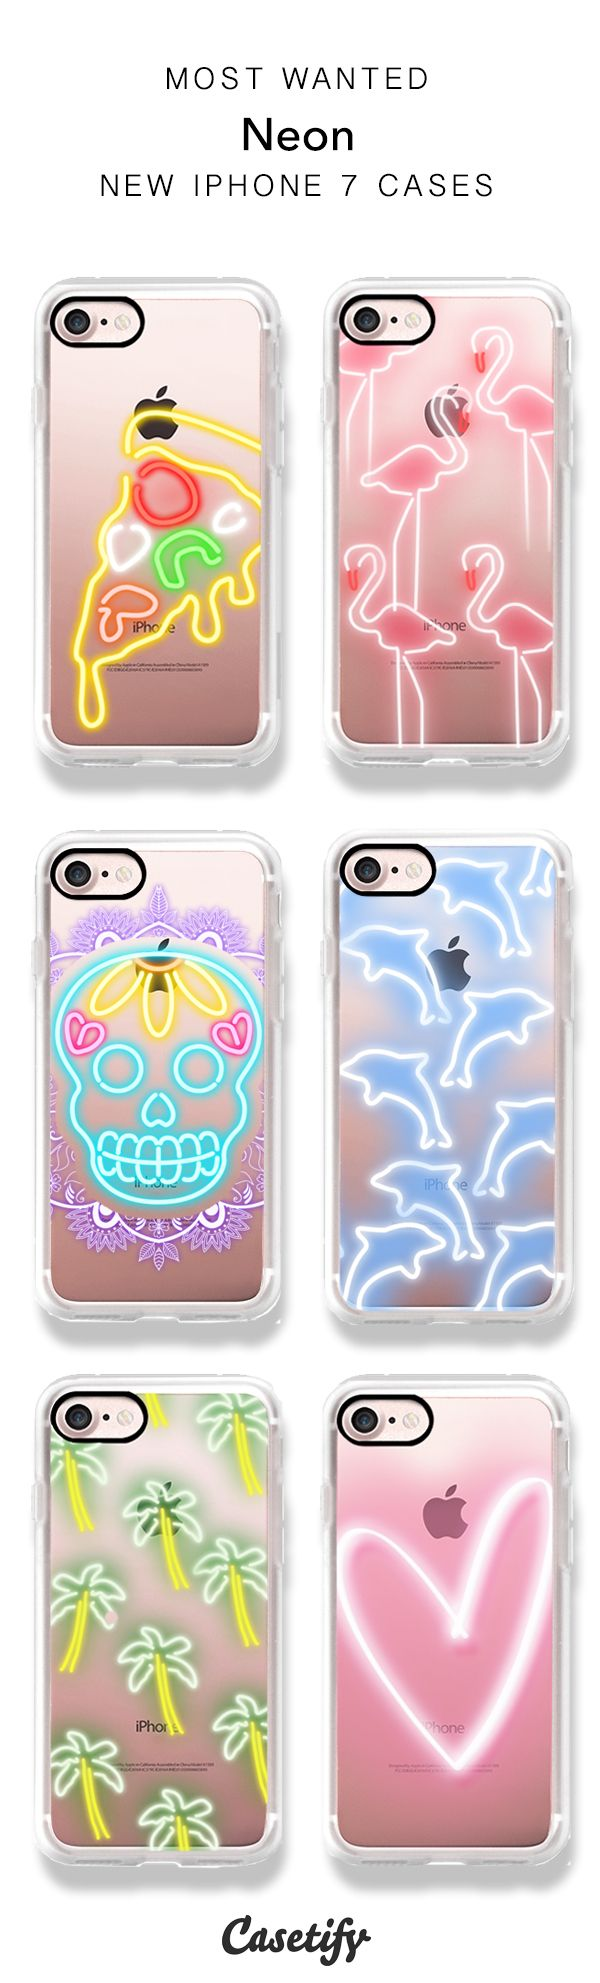 Light it up! Neon clear iPhone cases. Available for iPhone 7/7 plus/6/6s/5. Shop the Neon Collection here > https://www.casetify.com/artworks/WxG8F1qEQ4